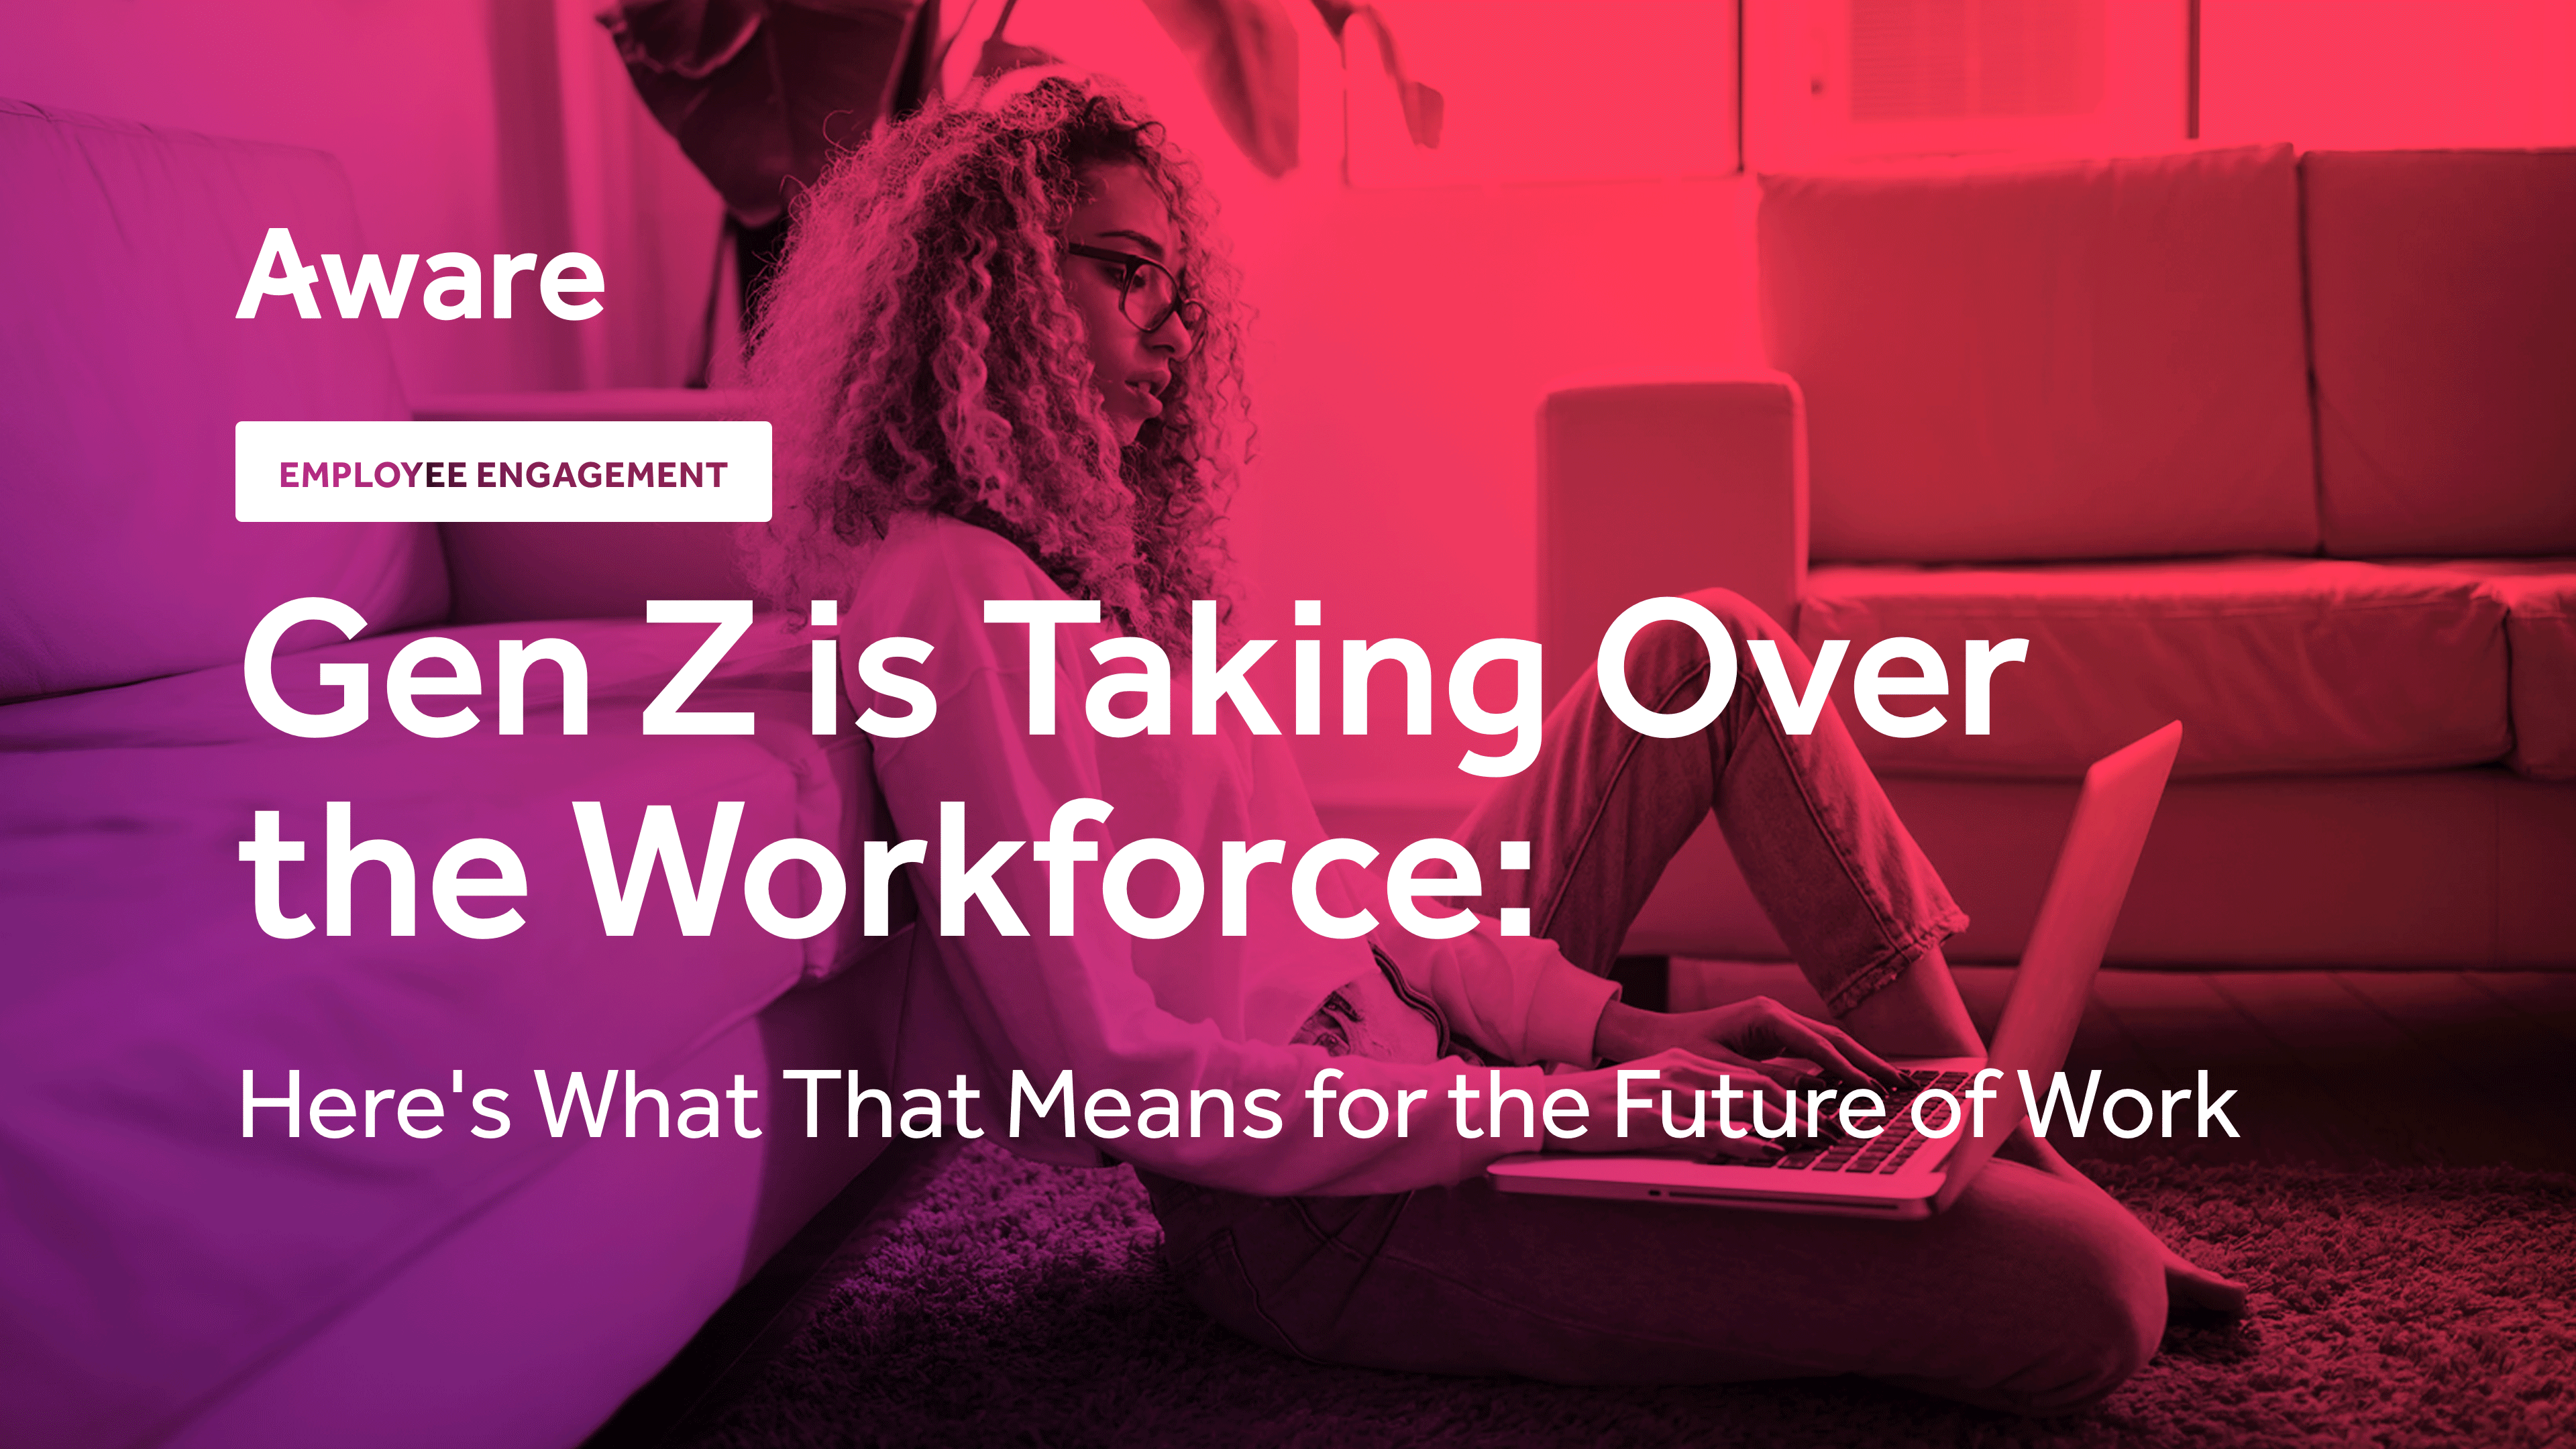 Gen Z is Taking Over the Workforce: Here's What That Means for the Future of Work